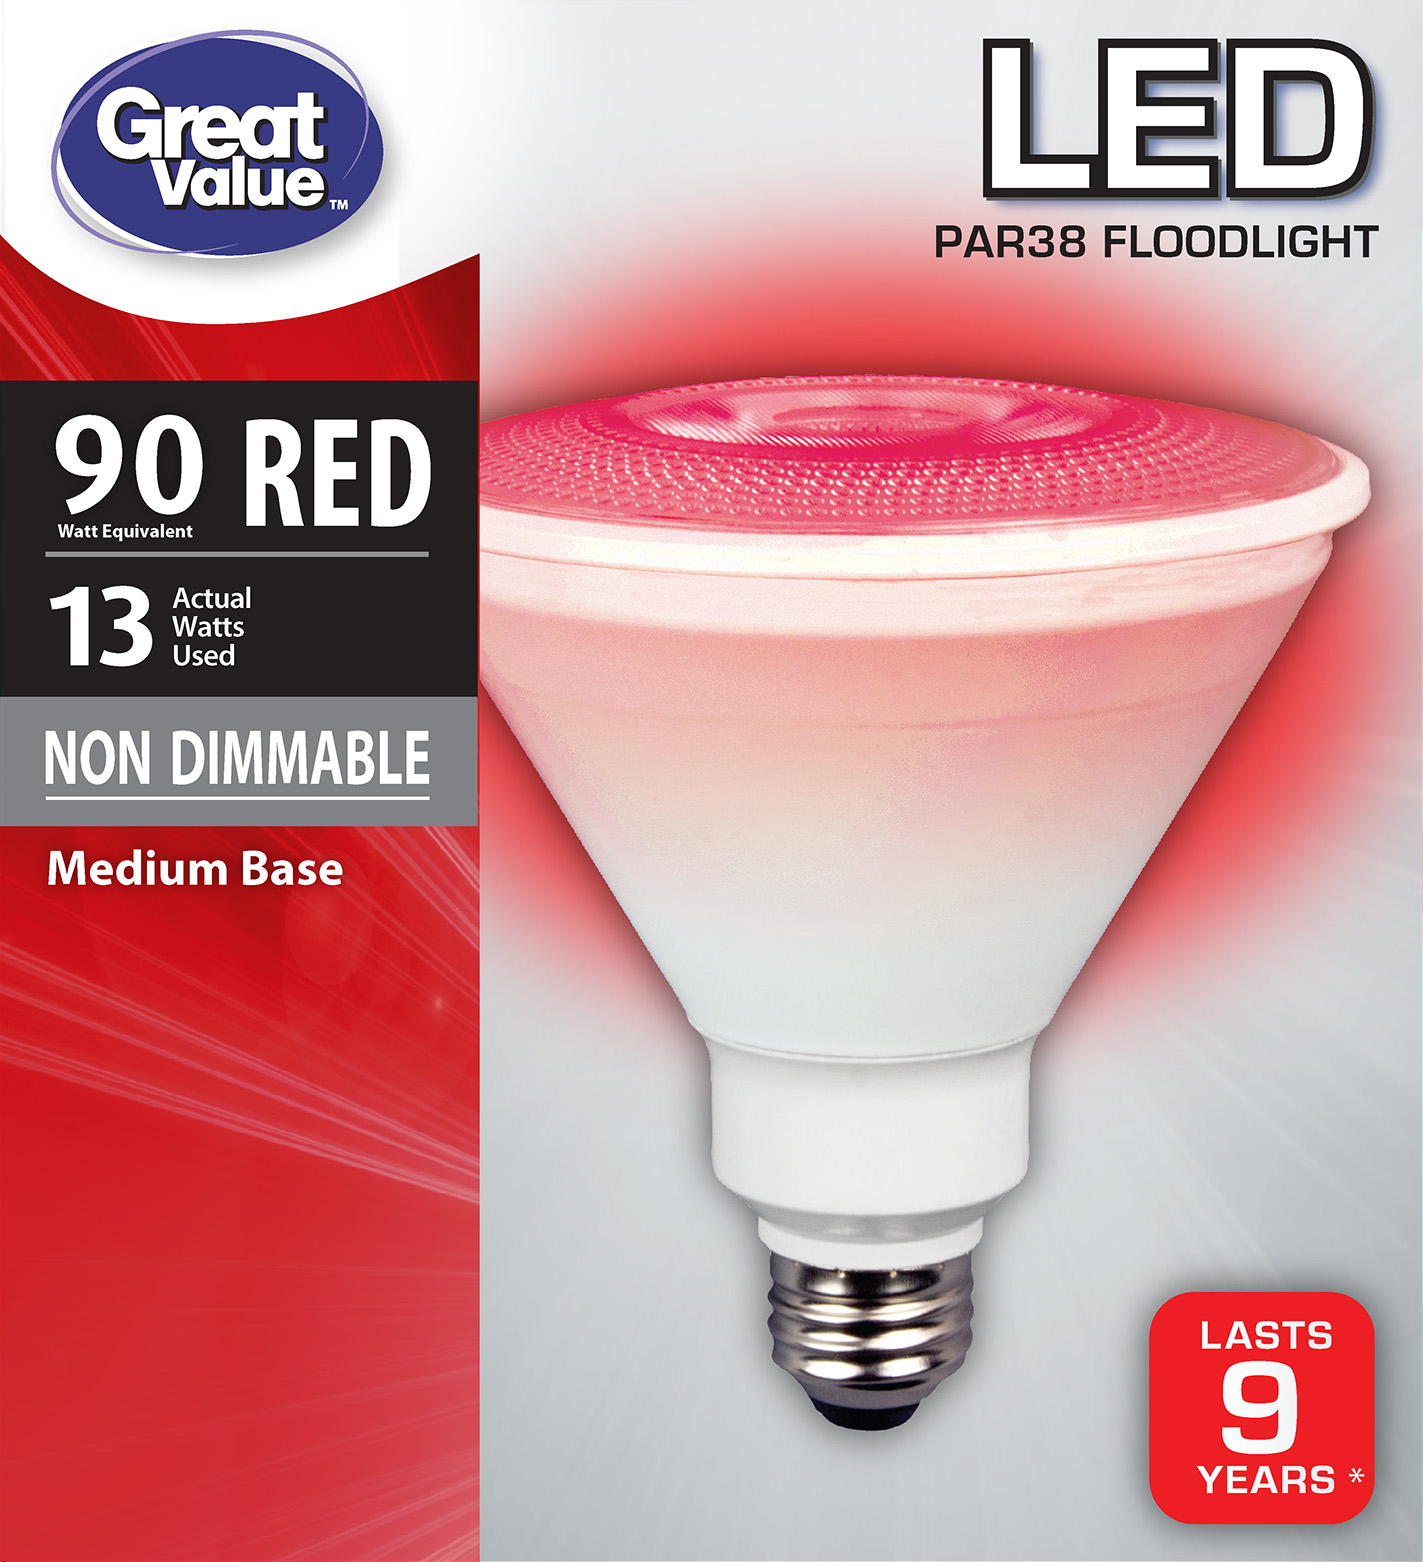 Great Value LED P38 Floodlight Light Bulb, 13W (90W Equivalent), Red